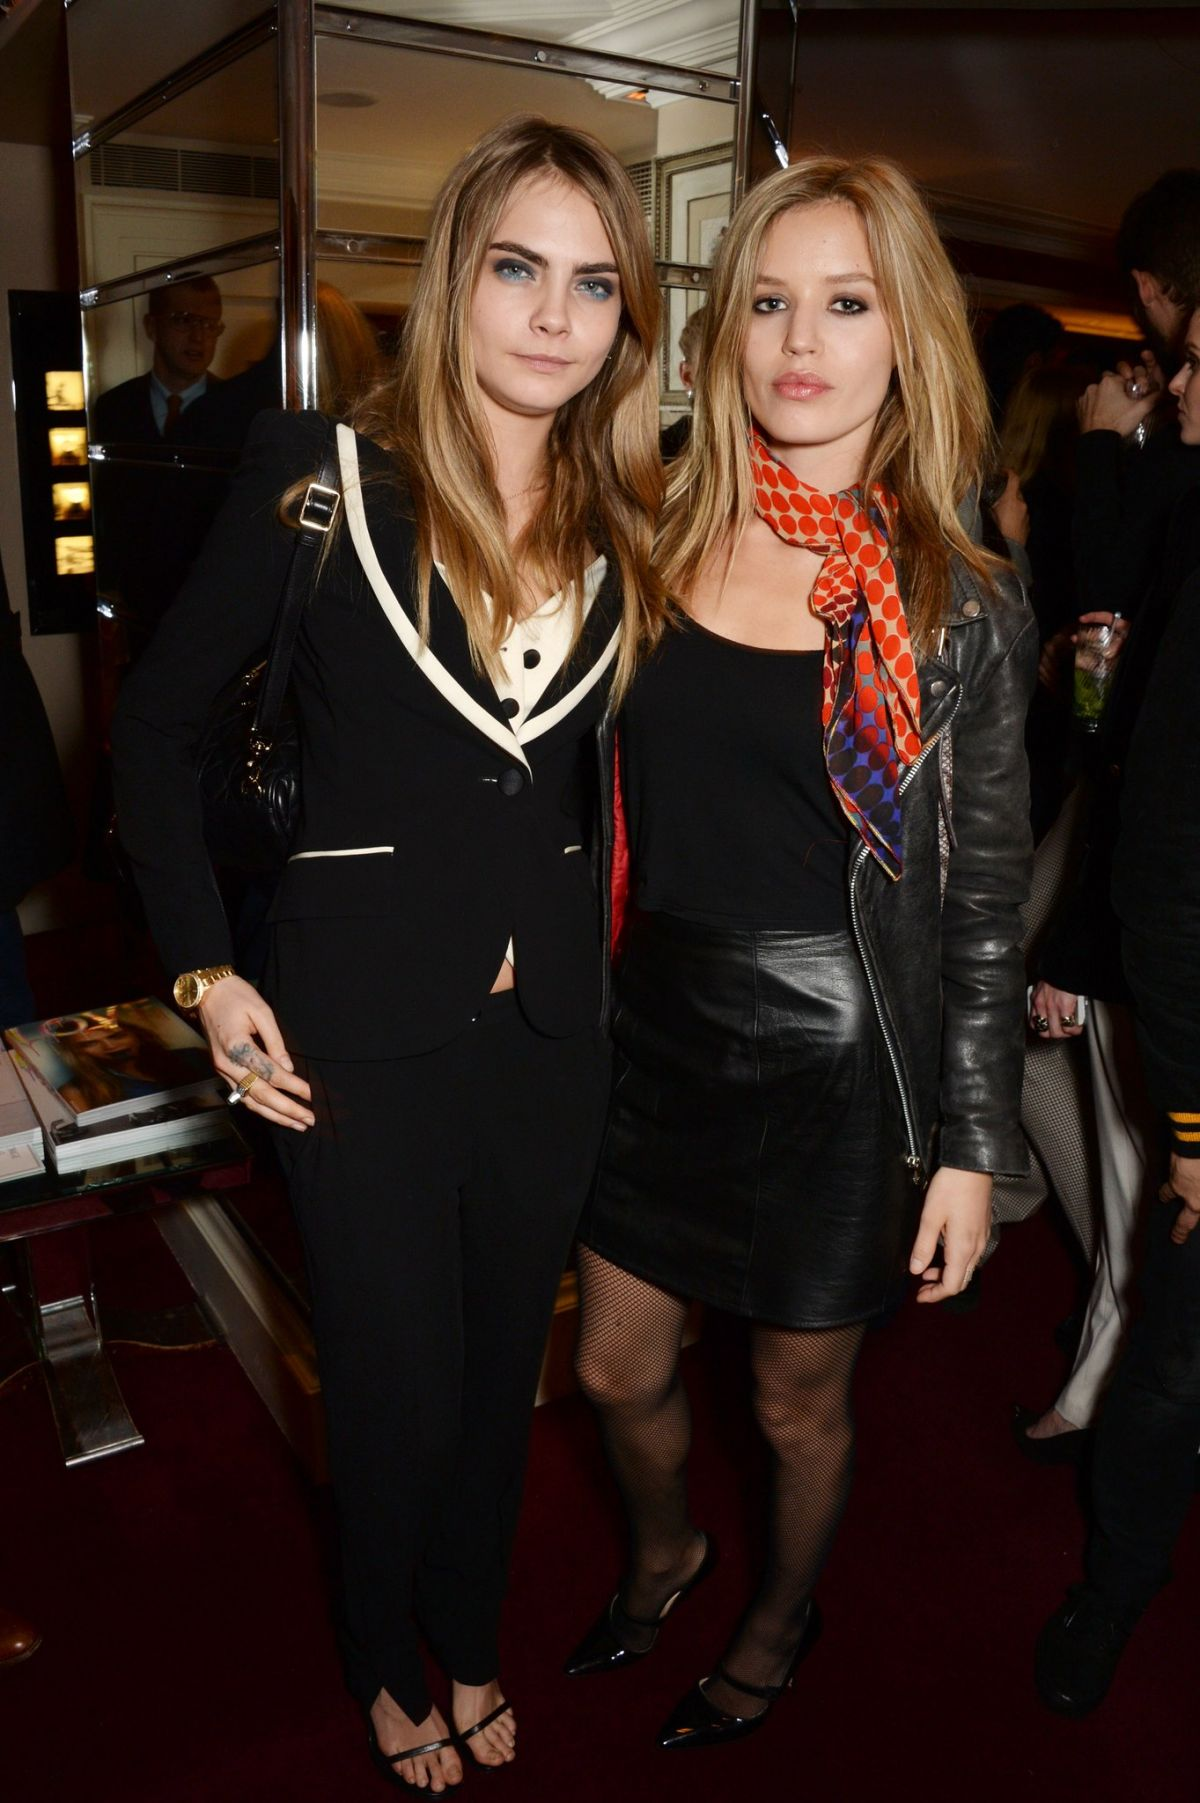 Cara Delevingne supported by Kendall and Kylie Jenner at